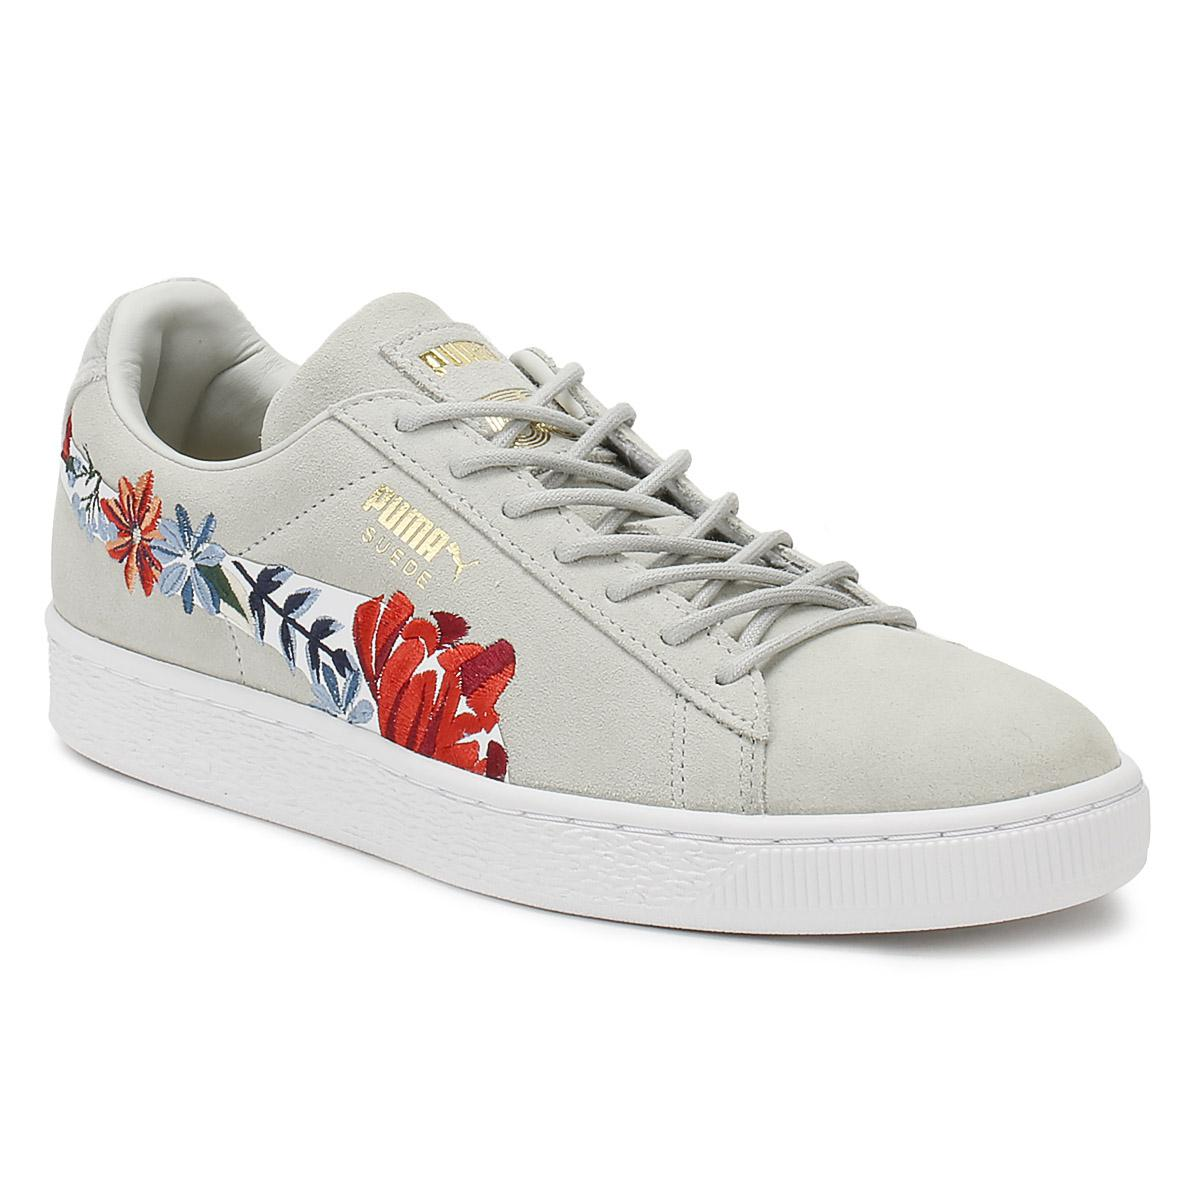 Lyst - PUMA Womens Glacier Grey Suede Classic Embroidery Trainers in ... 4aca6d953